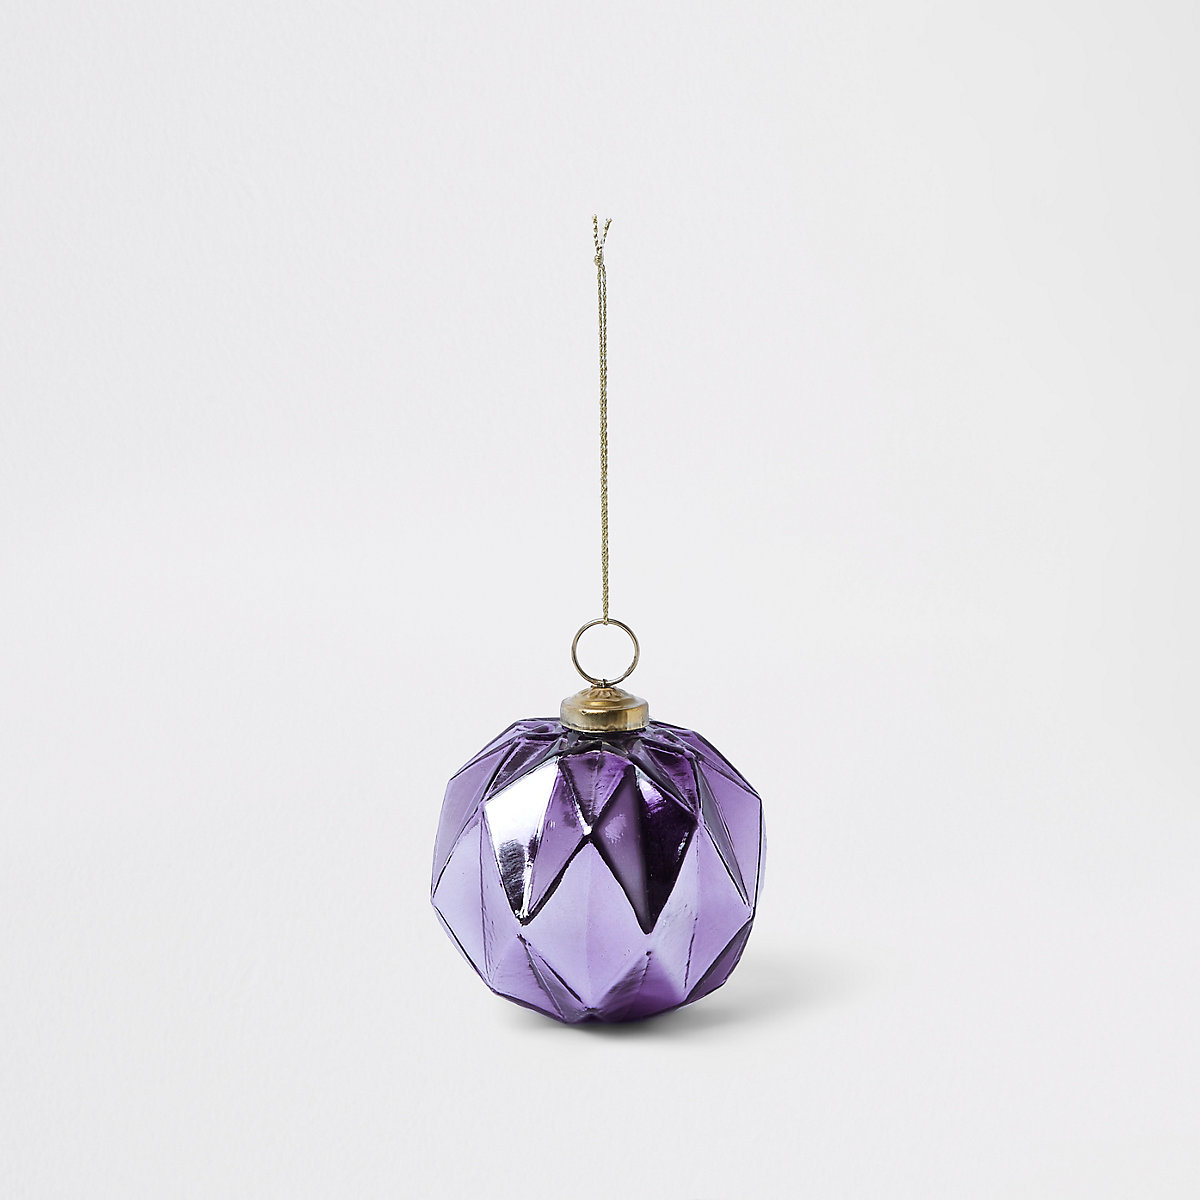 Purple hexagonal bauble